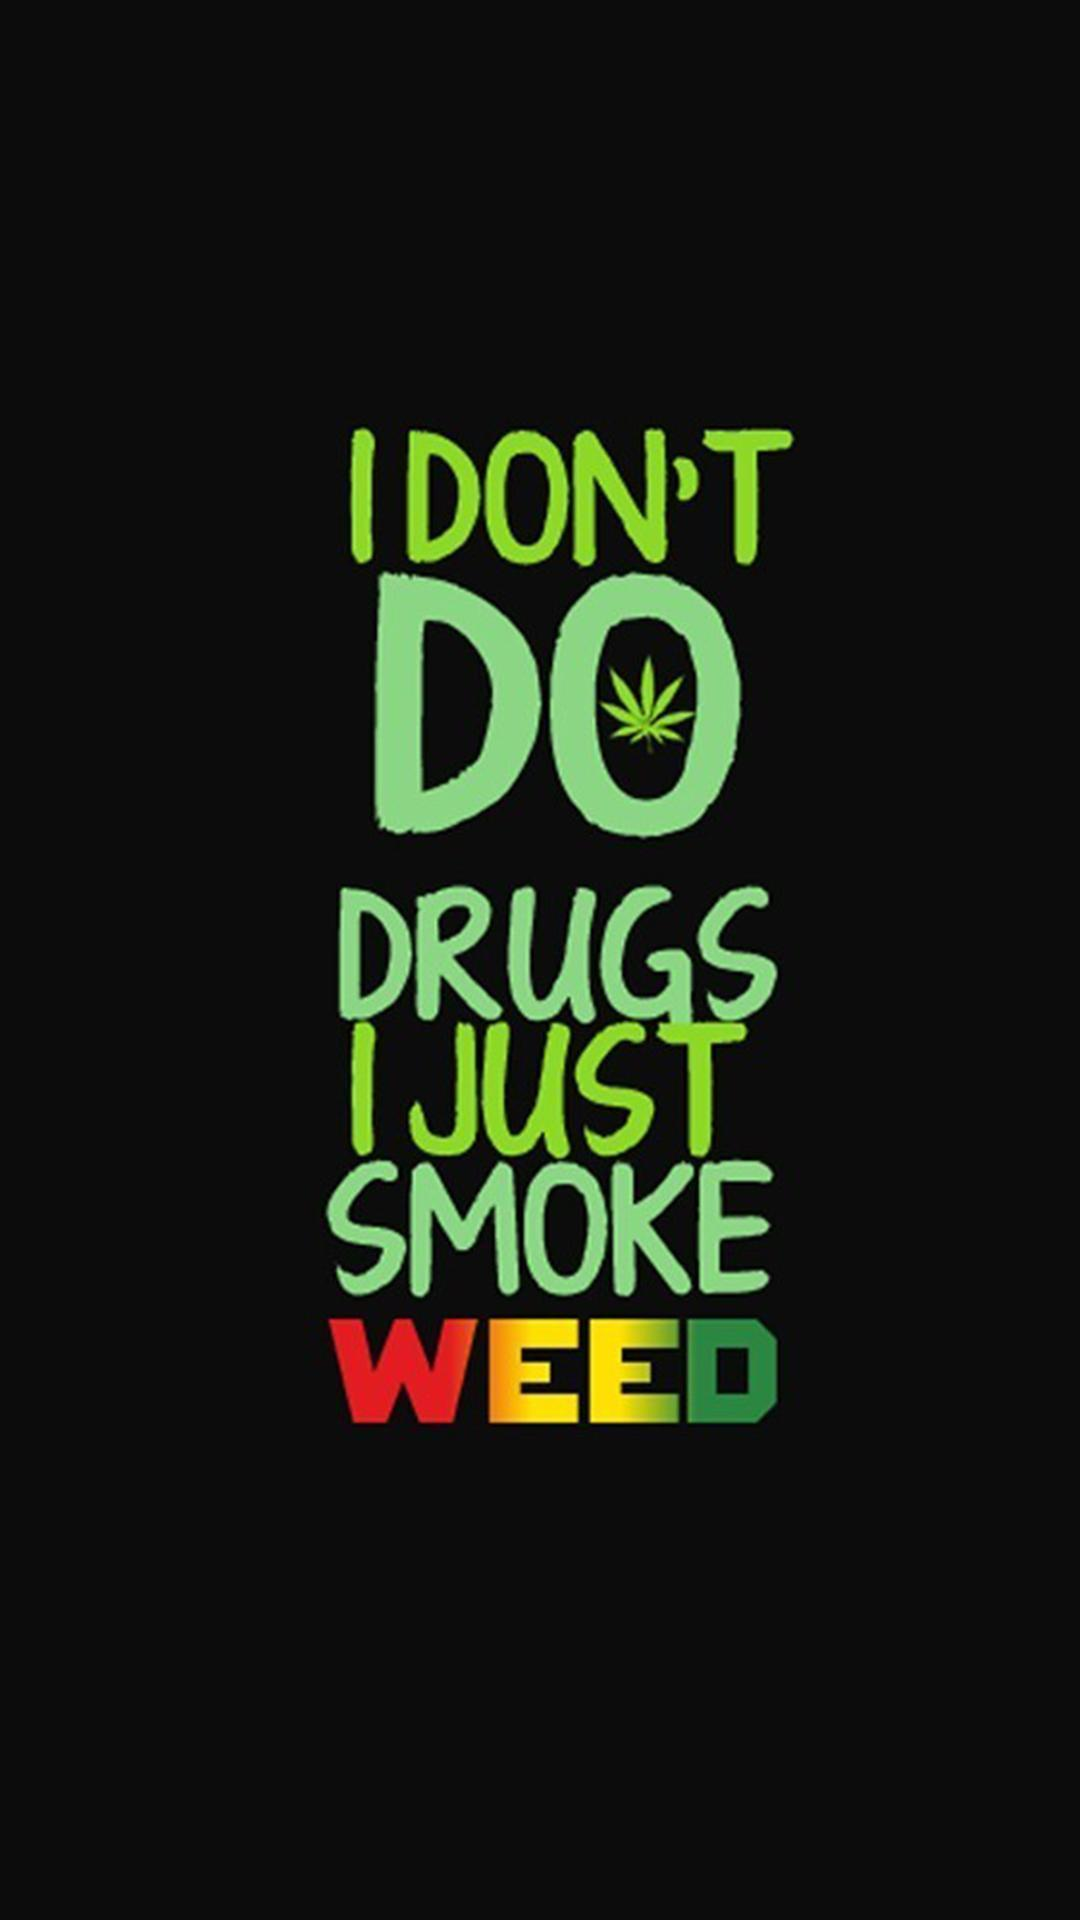 420 Weed Wallpapers for Android - APK Download